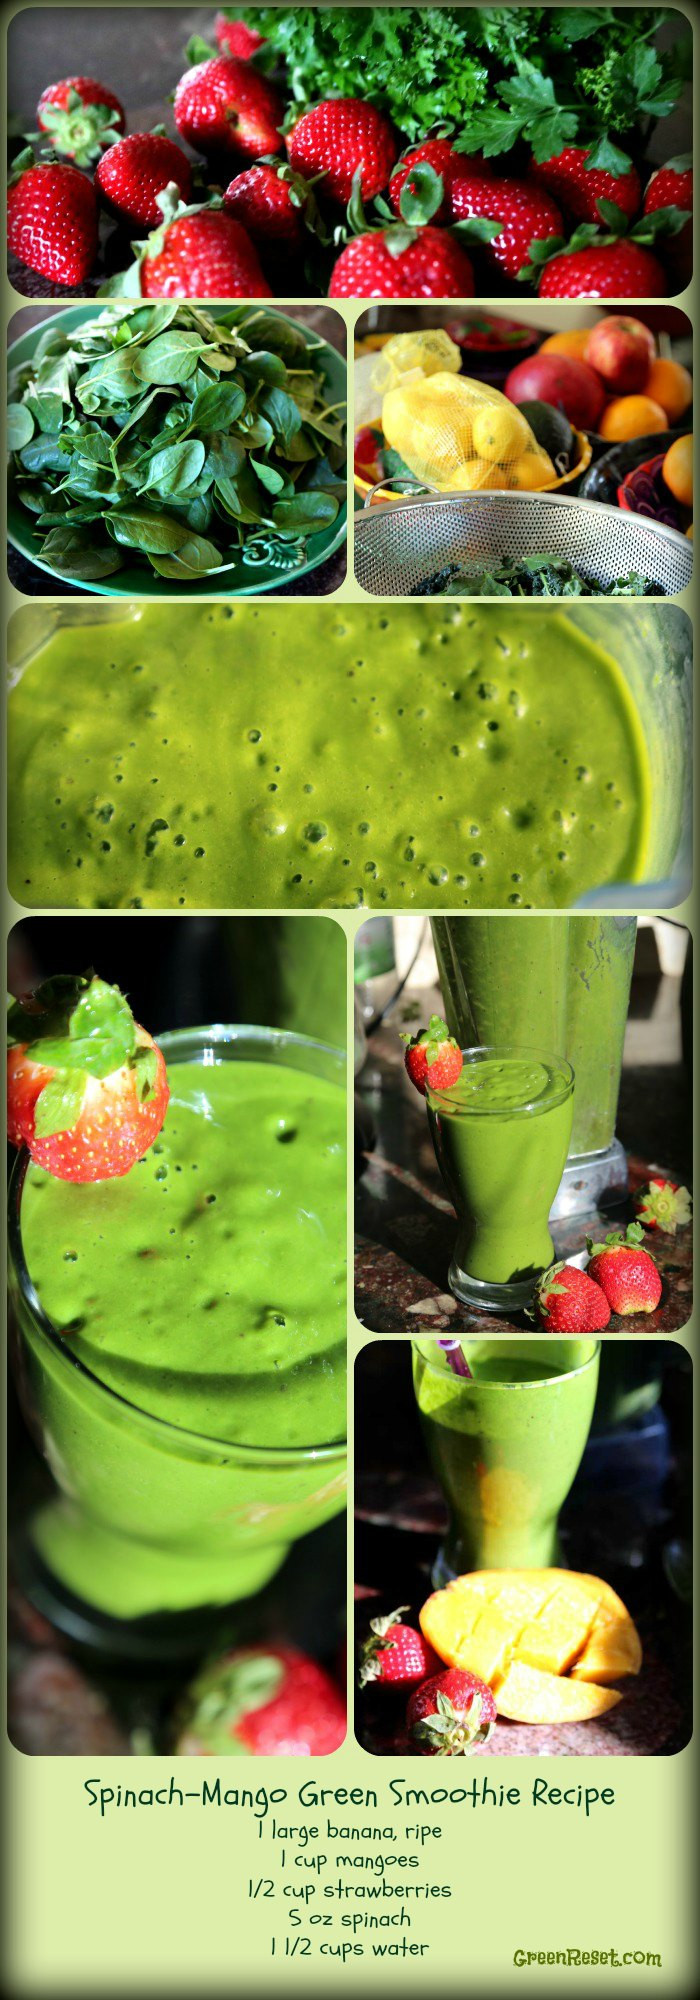 Healthy Smoothies With Spinach  10 Spinach Recipes for Smoothies